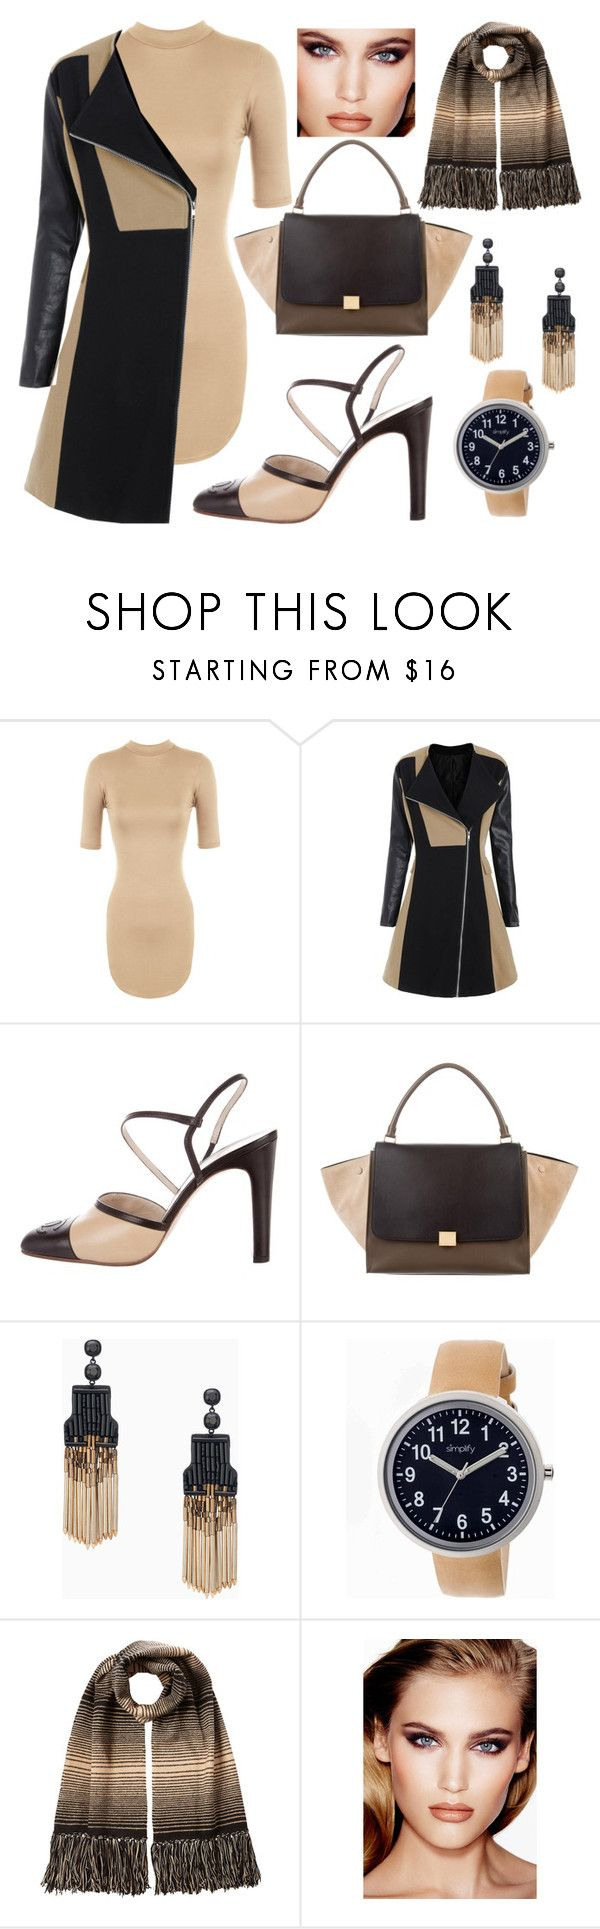 """""""Black and Tan"""" by lone-star-lady ❤ liked on Polyvore featuring WearAll, Chanel, CÉLINE, Stella & Dot, Simplify, Missoni and Charlotte Tilbury"""